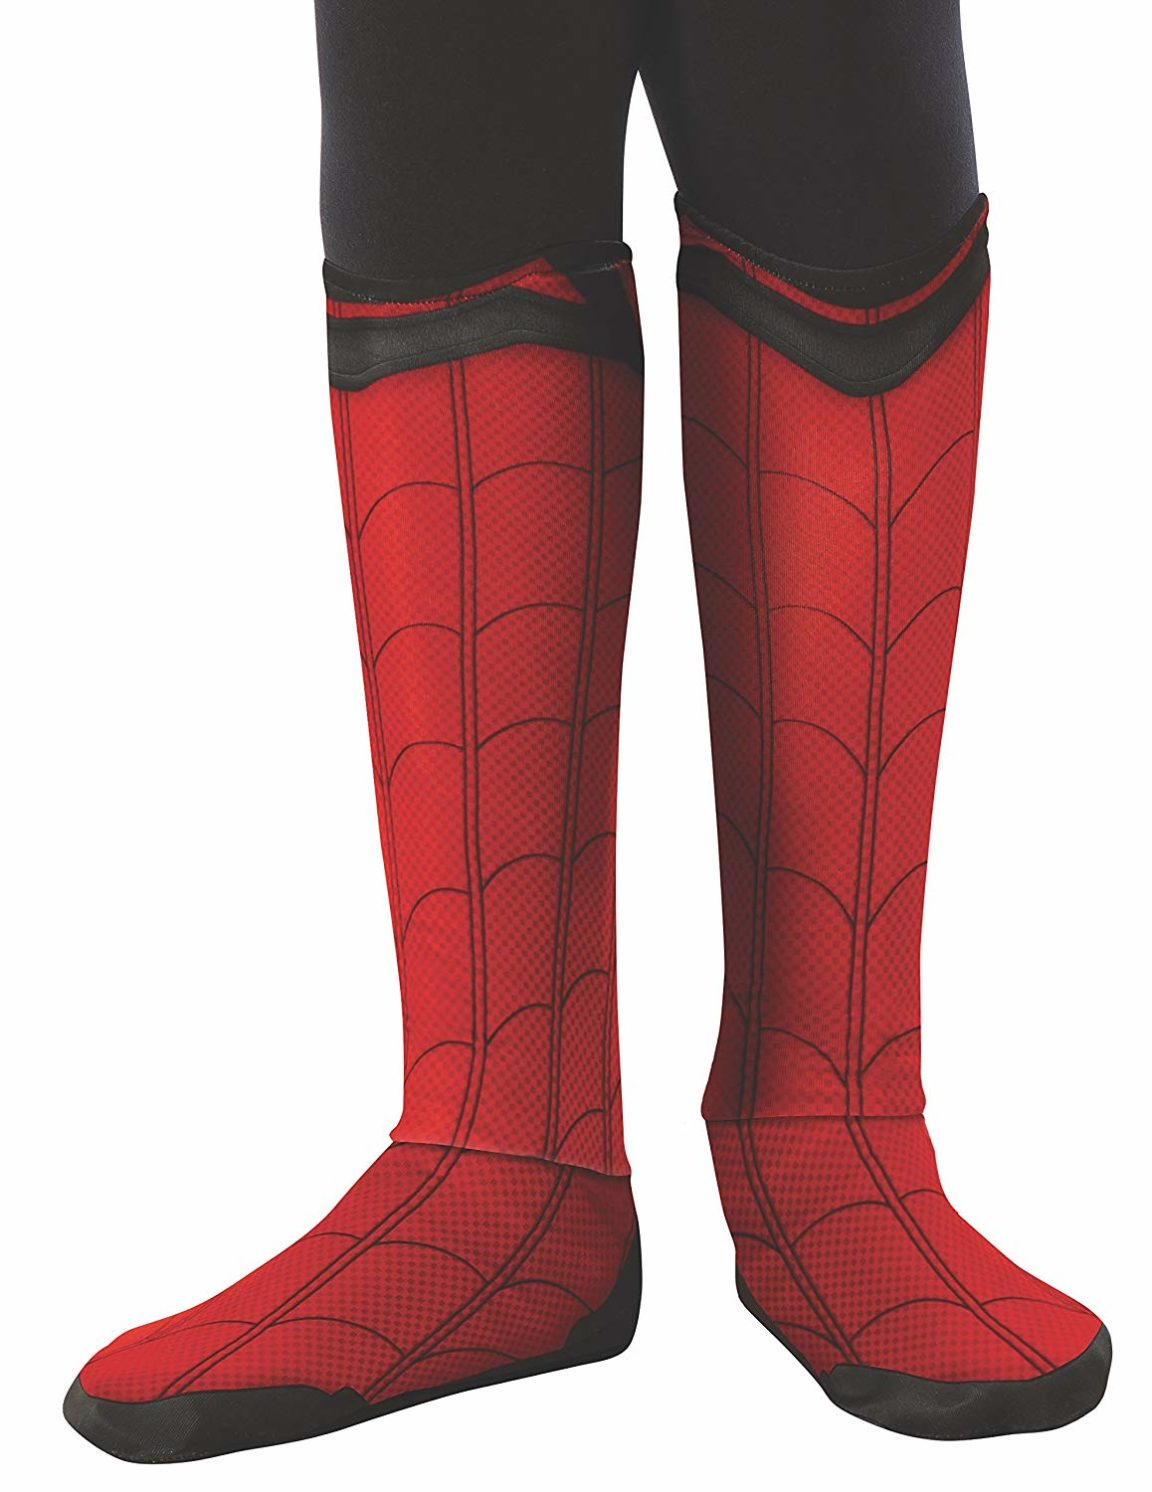 6e60ec11231 The Coolest Spiderman Socks - Cool Things